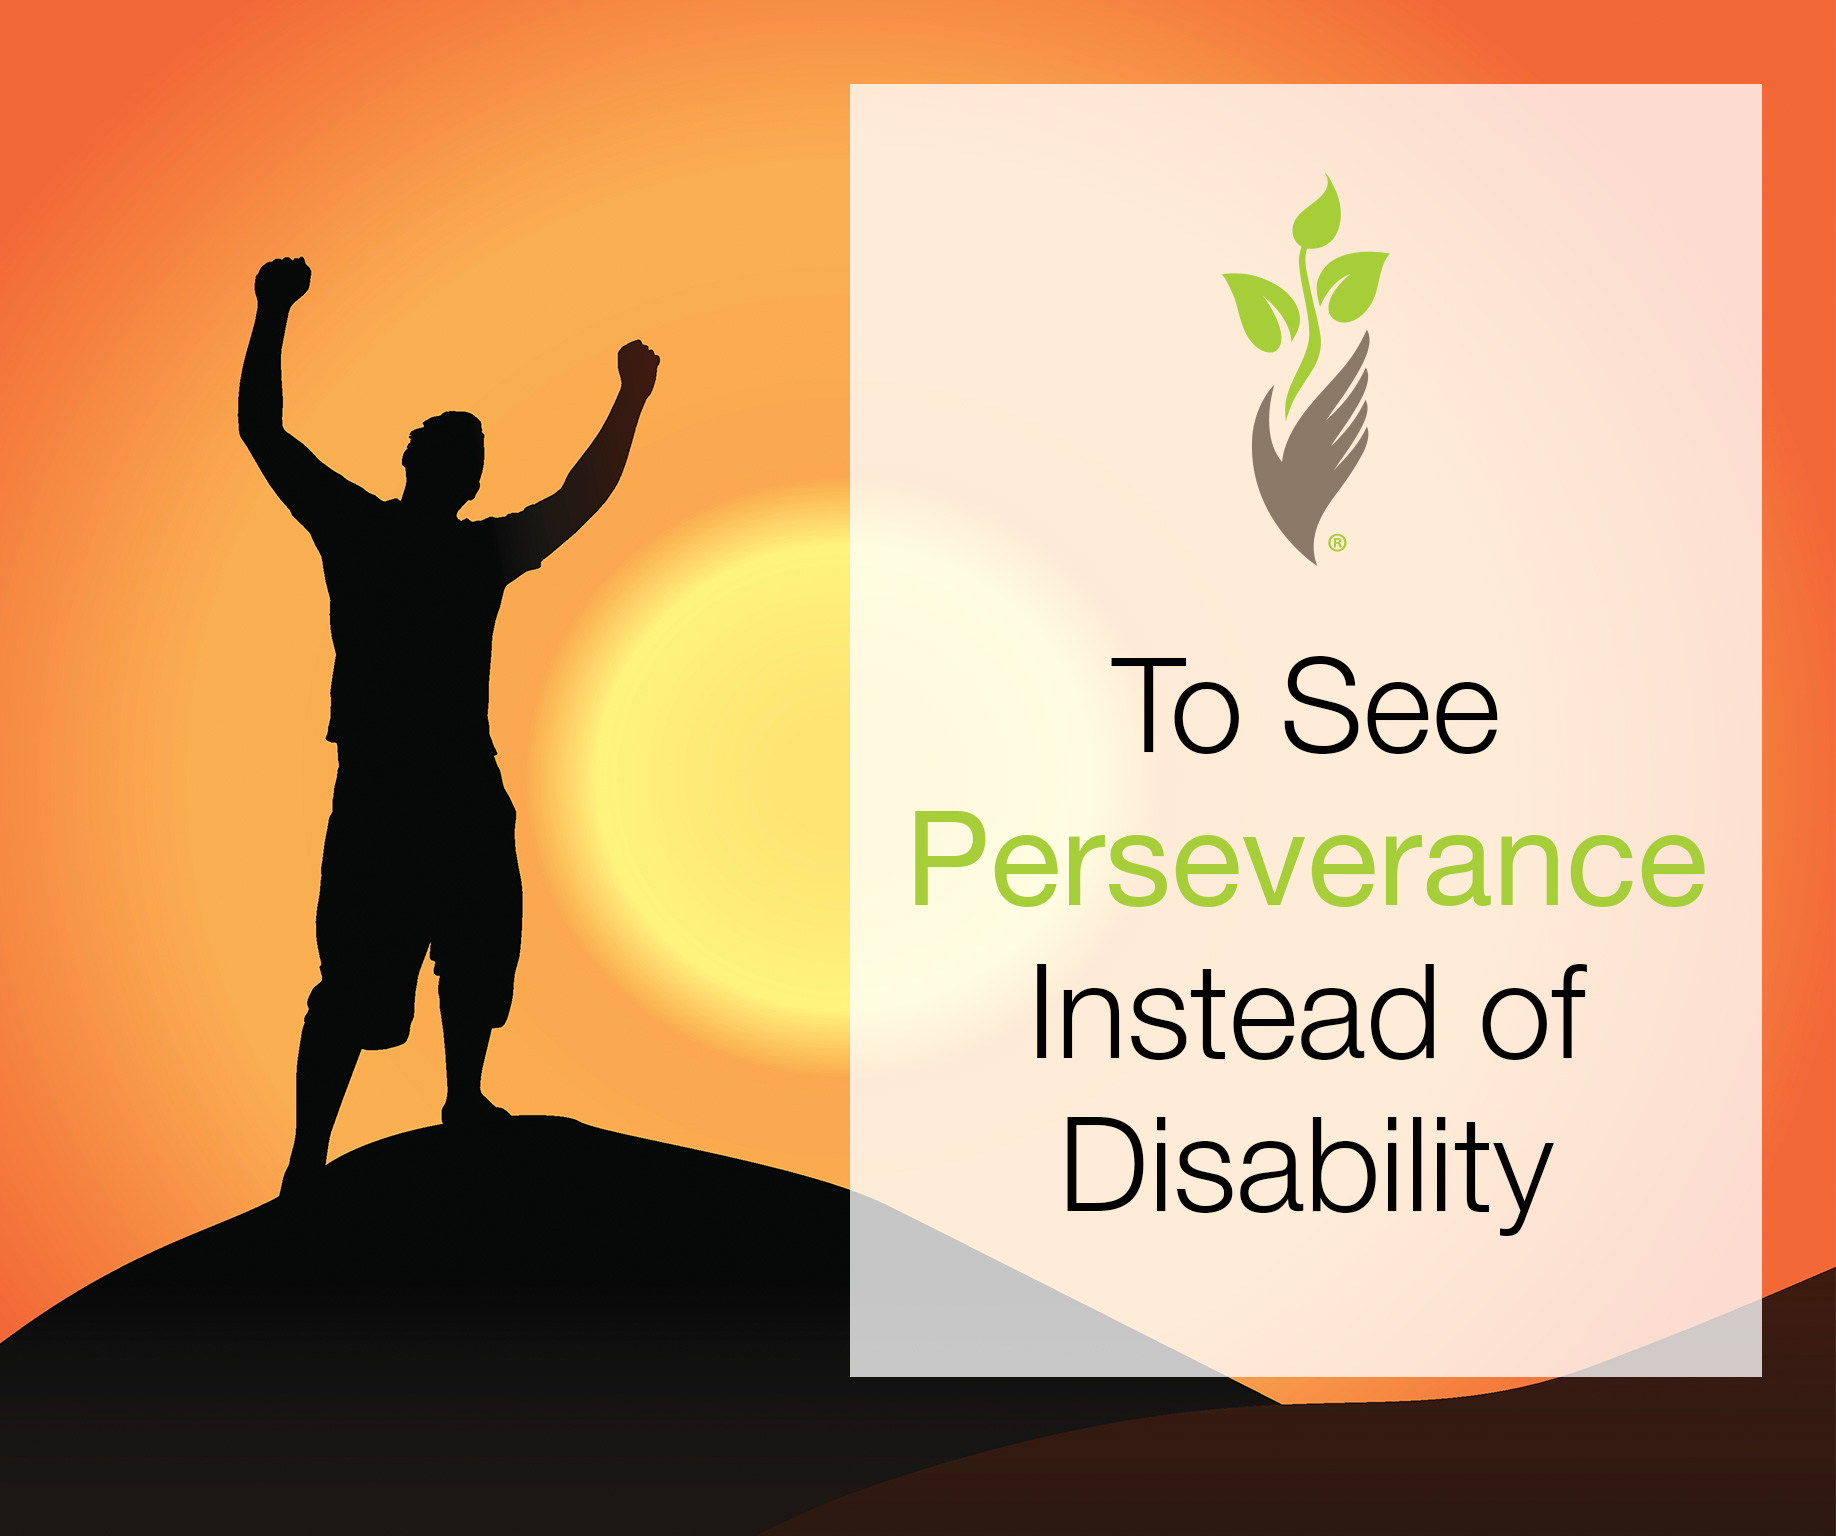 To See Perseverance Instead of Disability